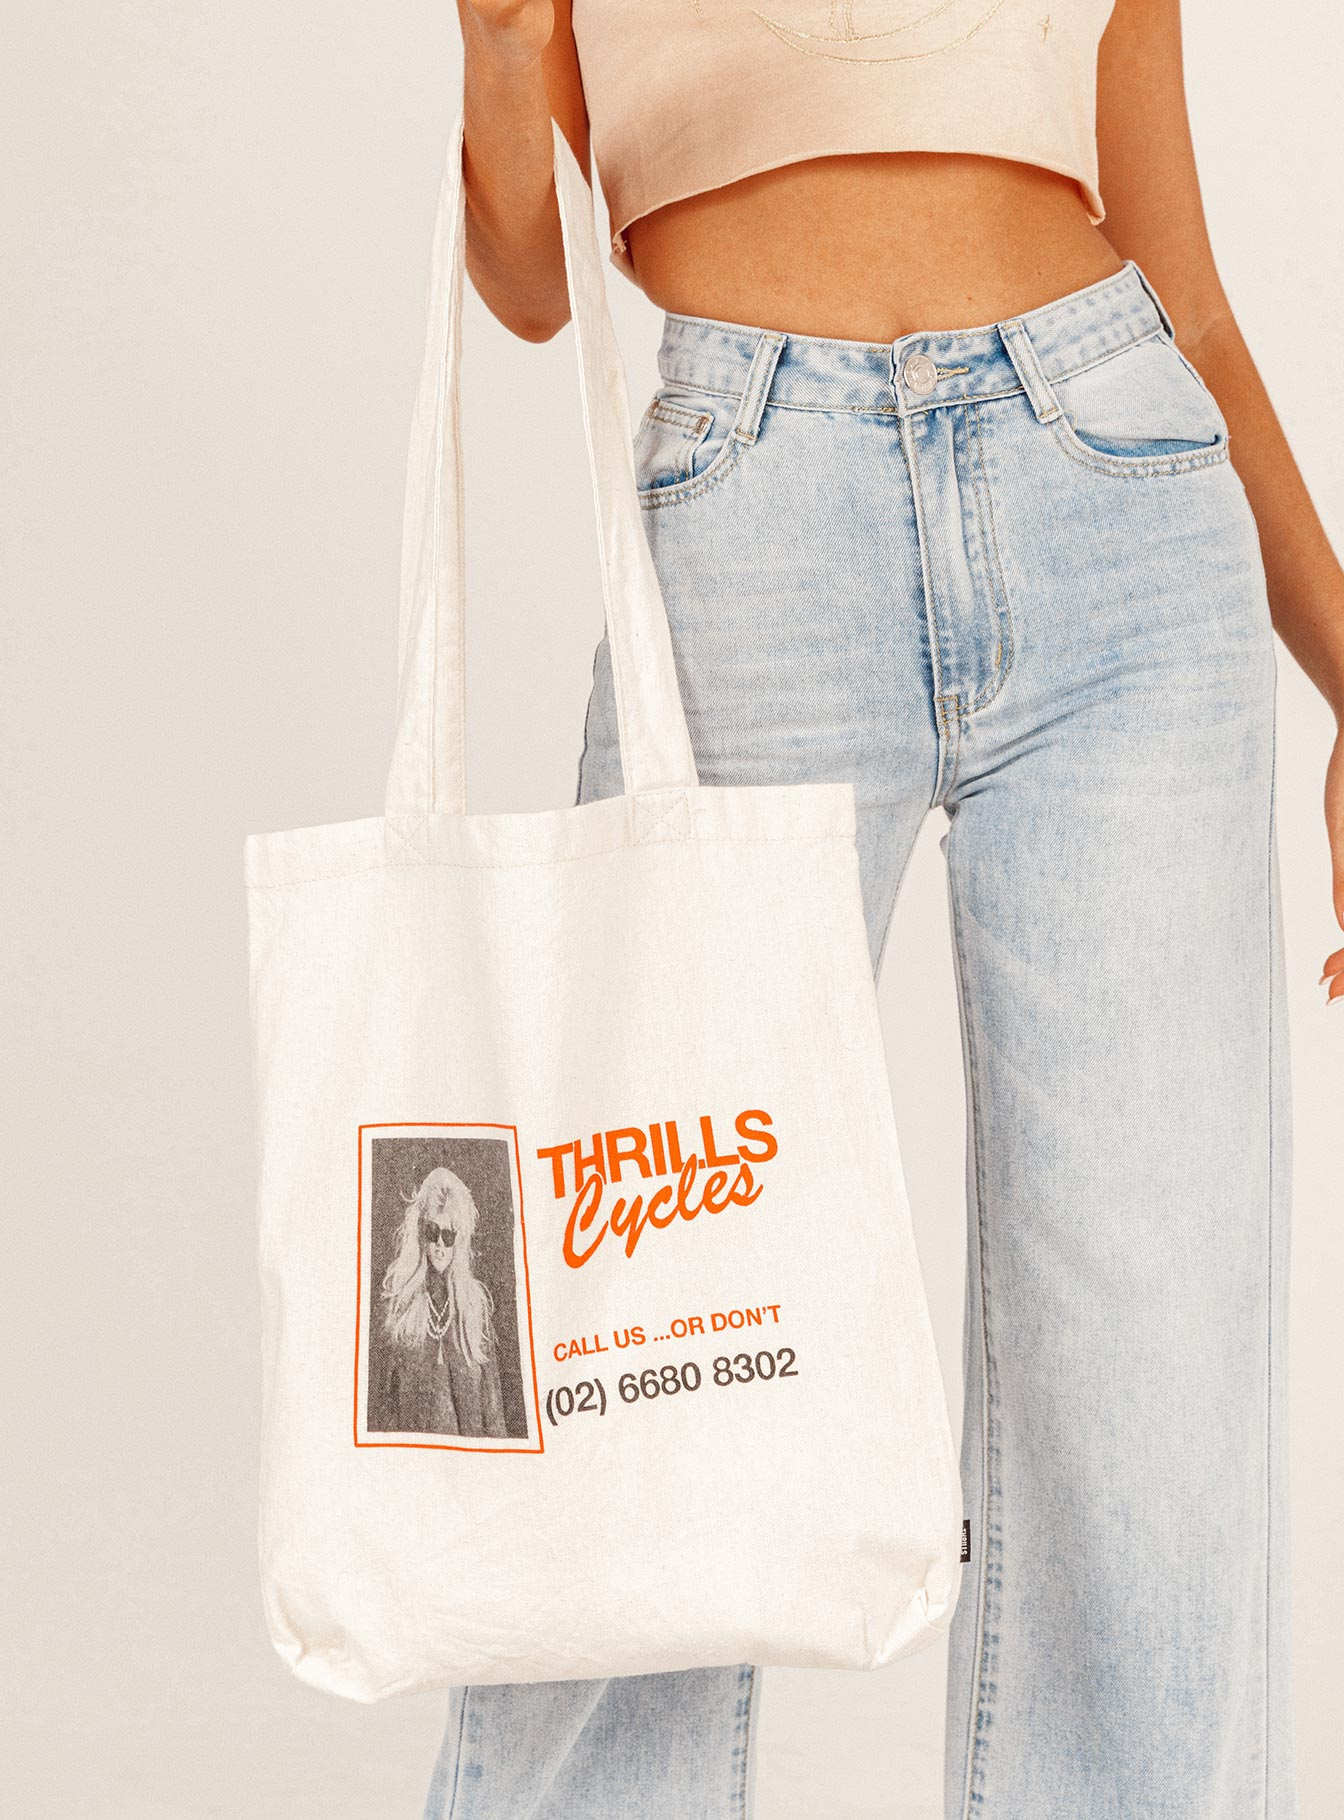 Thrills Call Us Tote